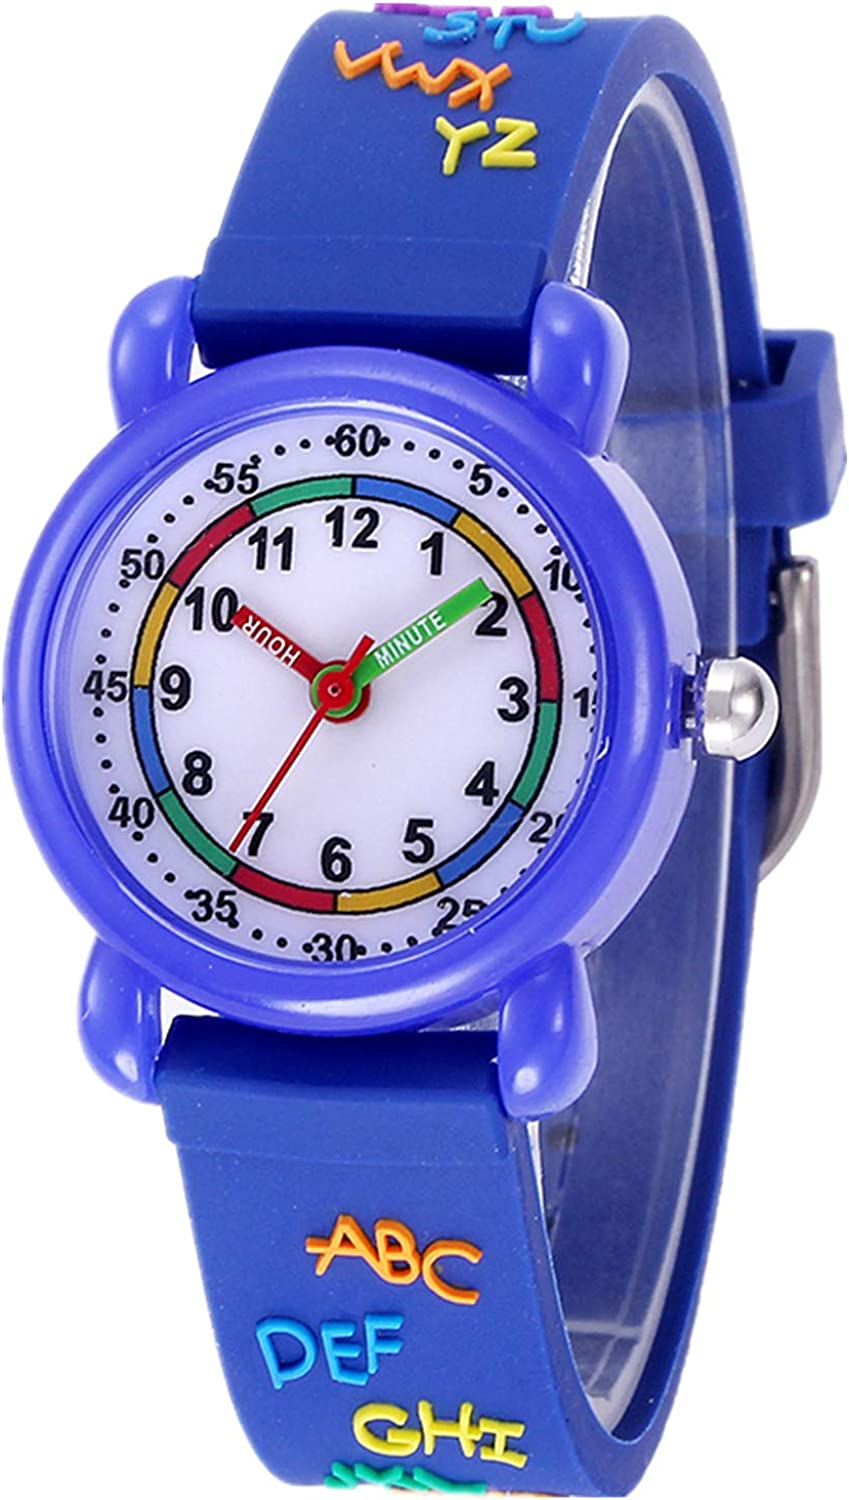 WUTAN Watches for Girls Boys We OFFer at cheap prices Adorable 1 year warranty Wrist Wat Girl Sport Watch